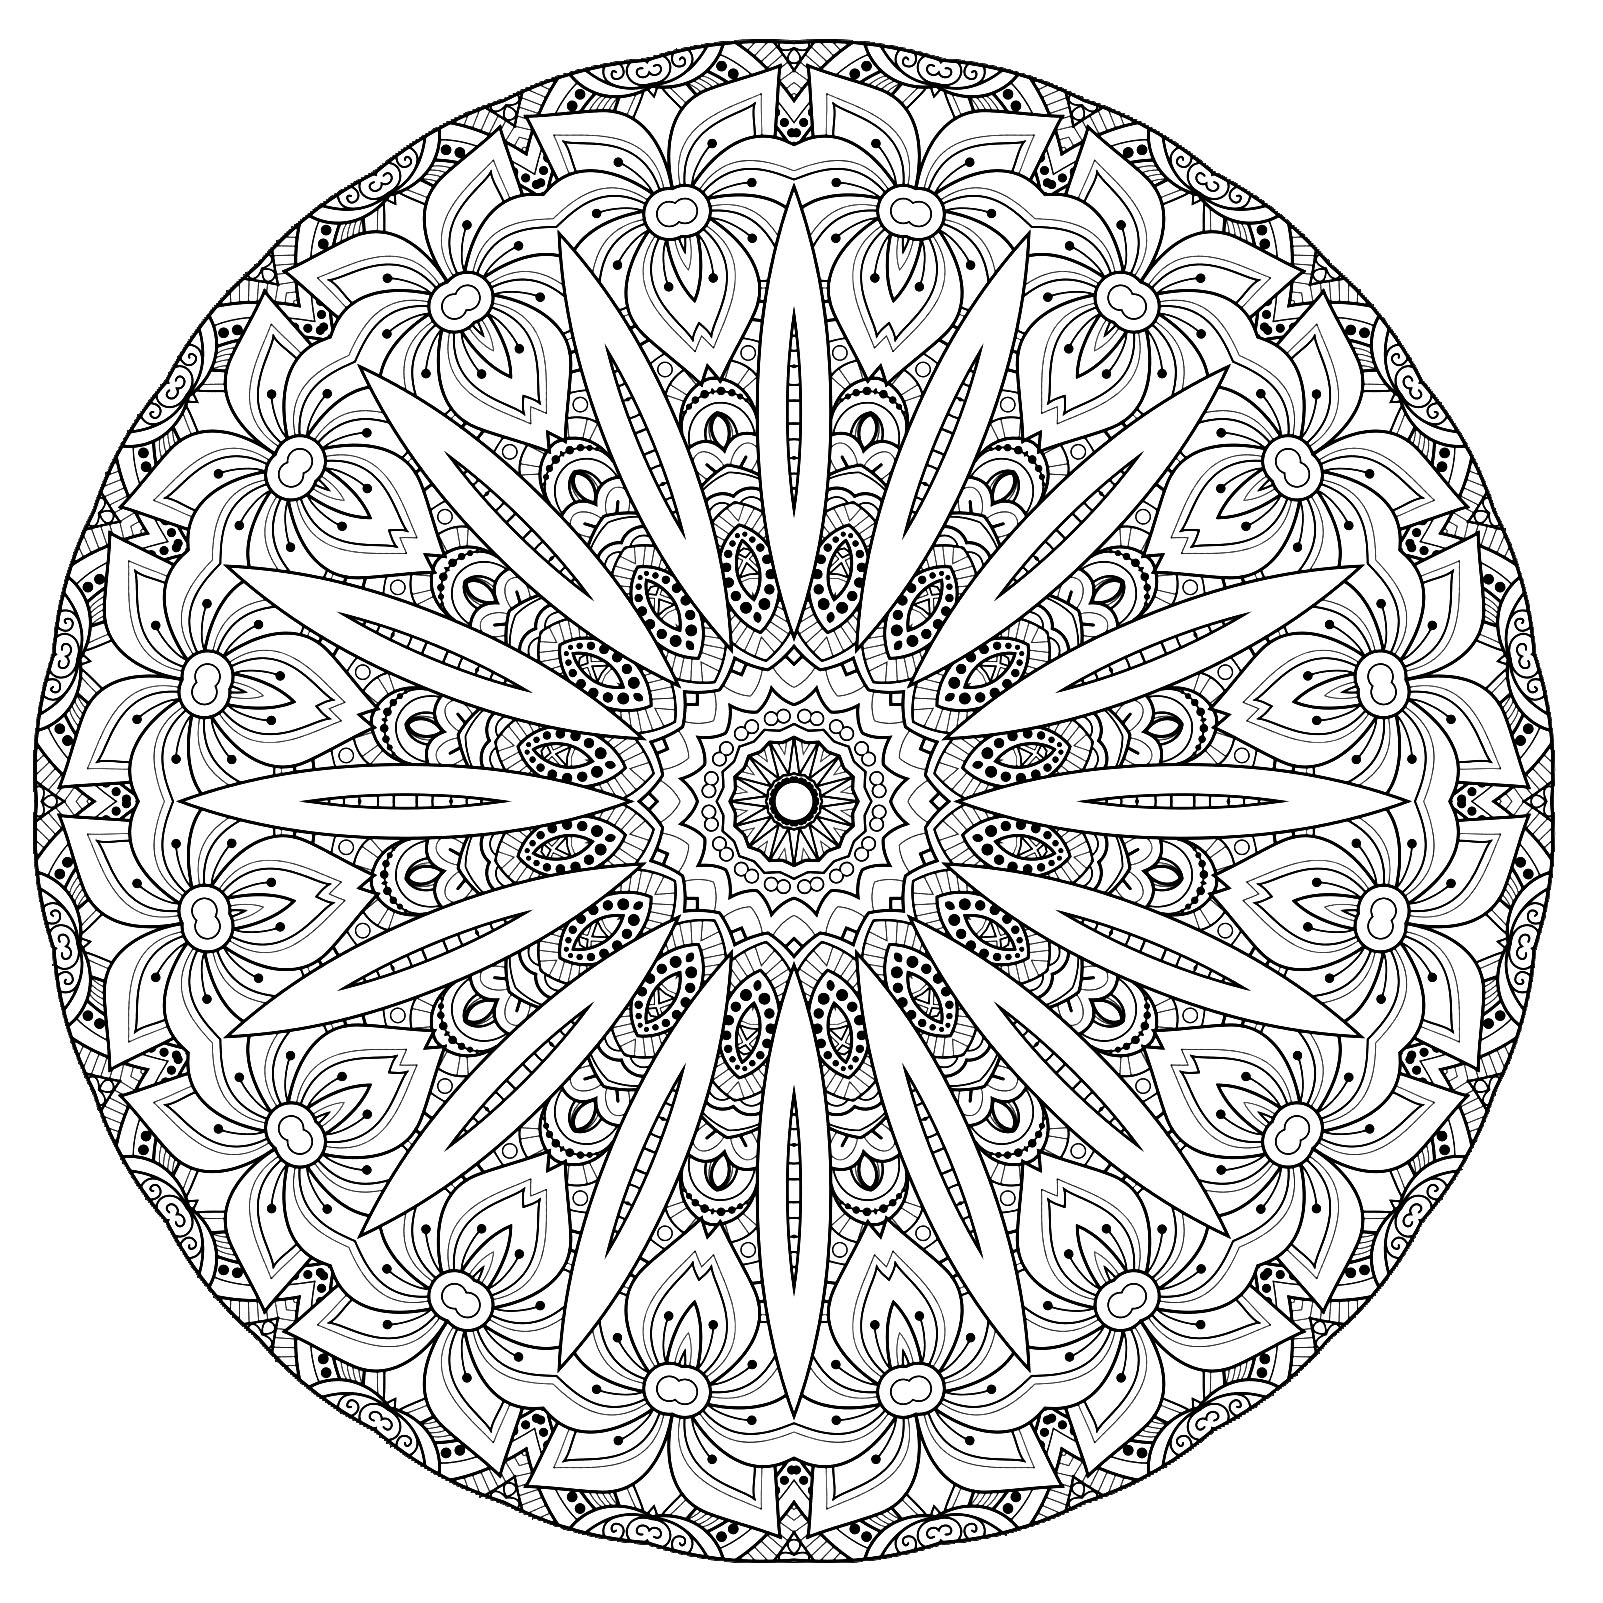 A Mandala quite difficult to color, perfect if you like to color small areas, and if you like various details, and for this one beautiful flowers.